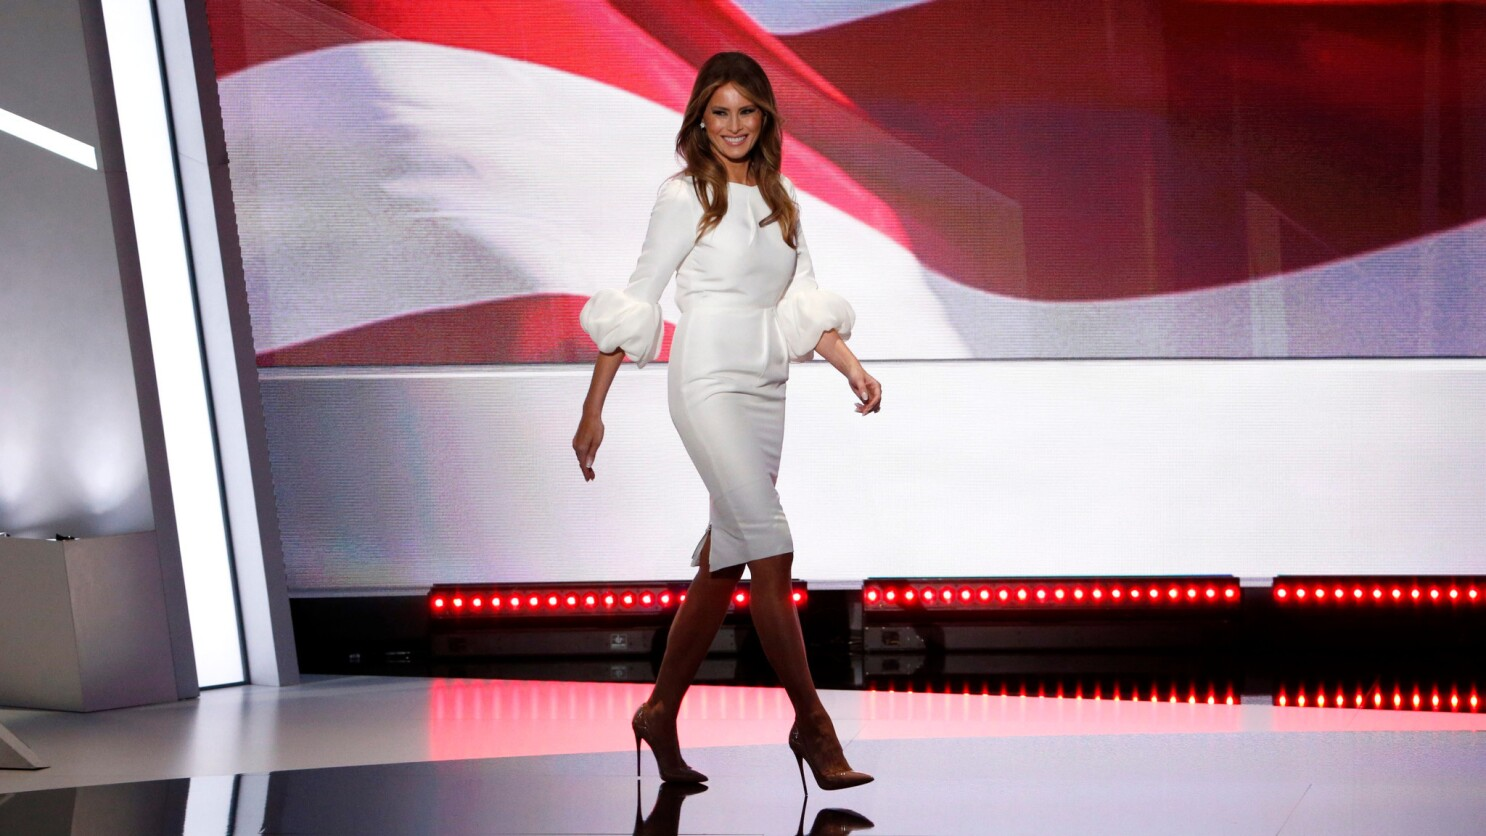 Melania Trump Delivers Her Convention Speech In A Dress By London Based Designer Roksanda Ilincic Los Angeles Times